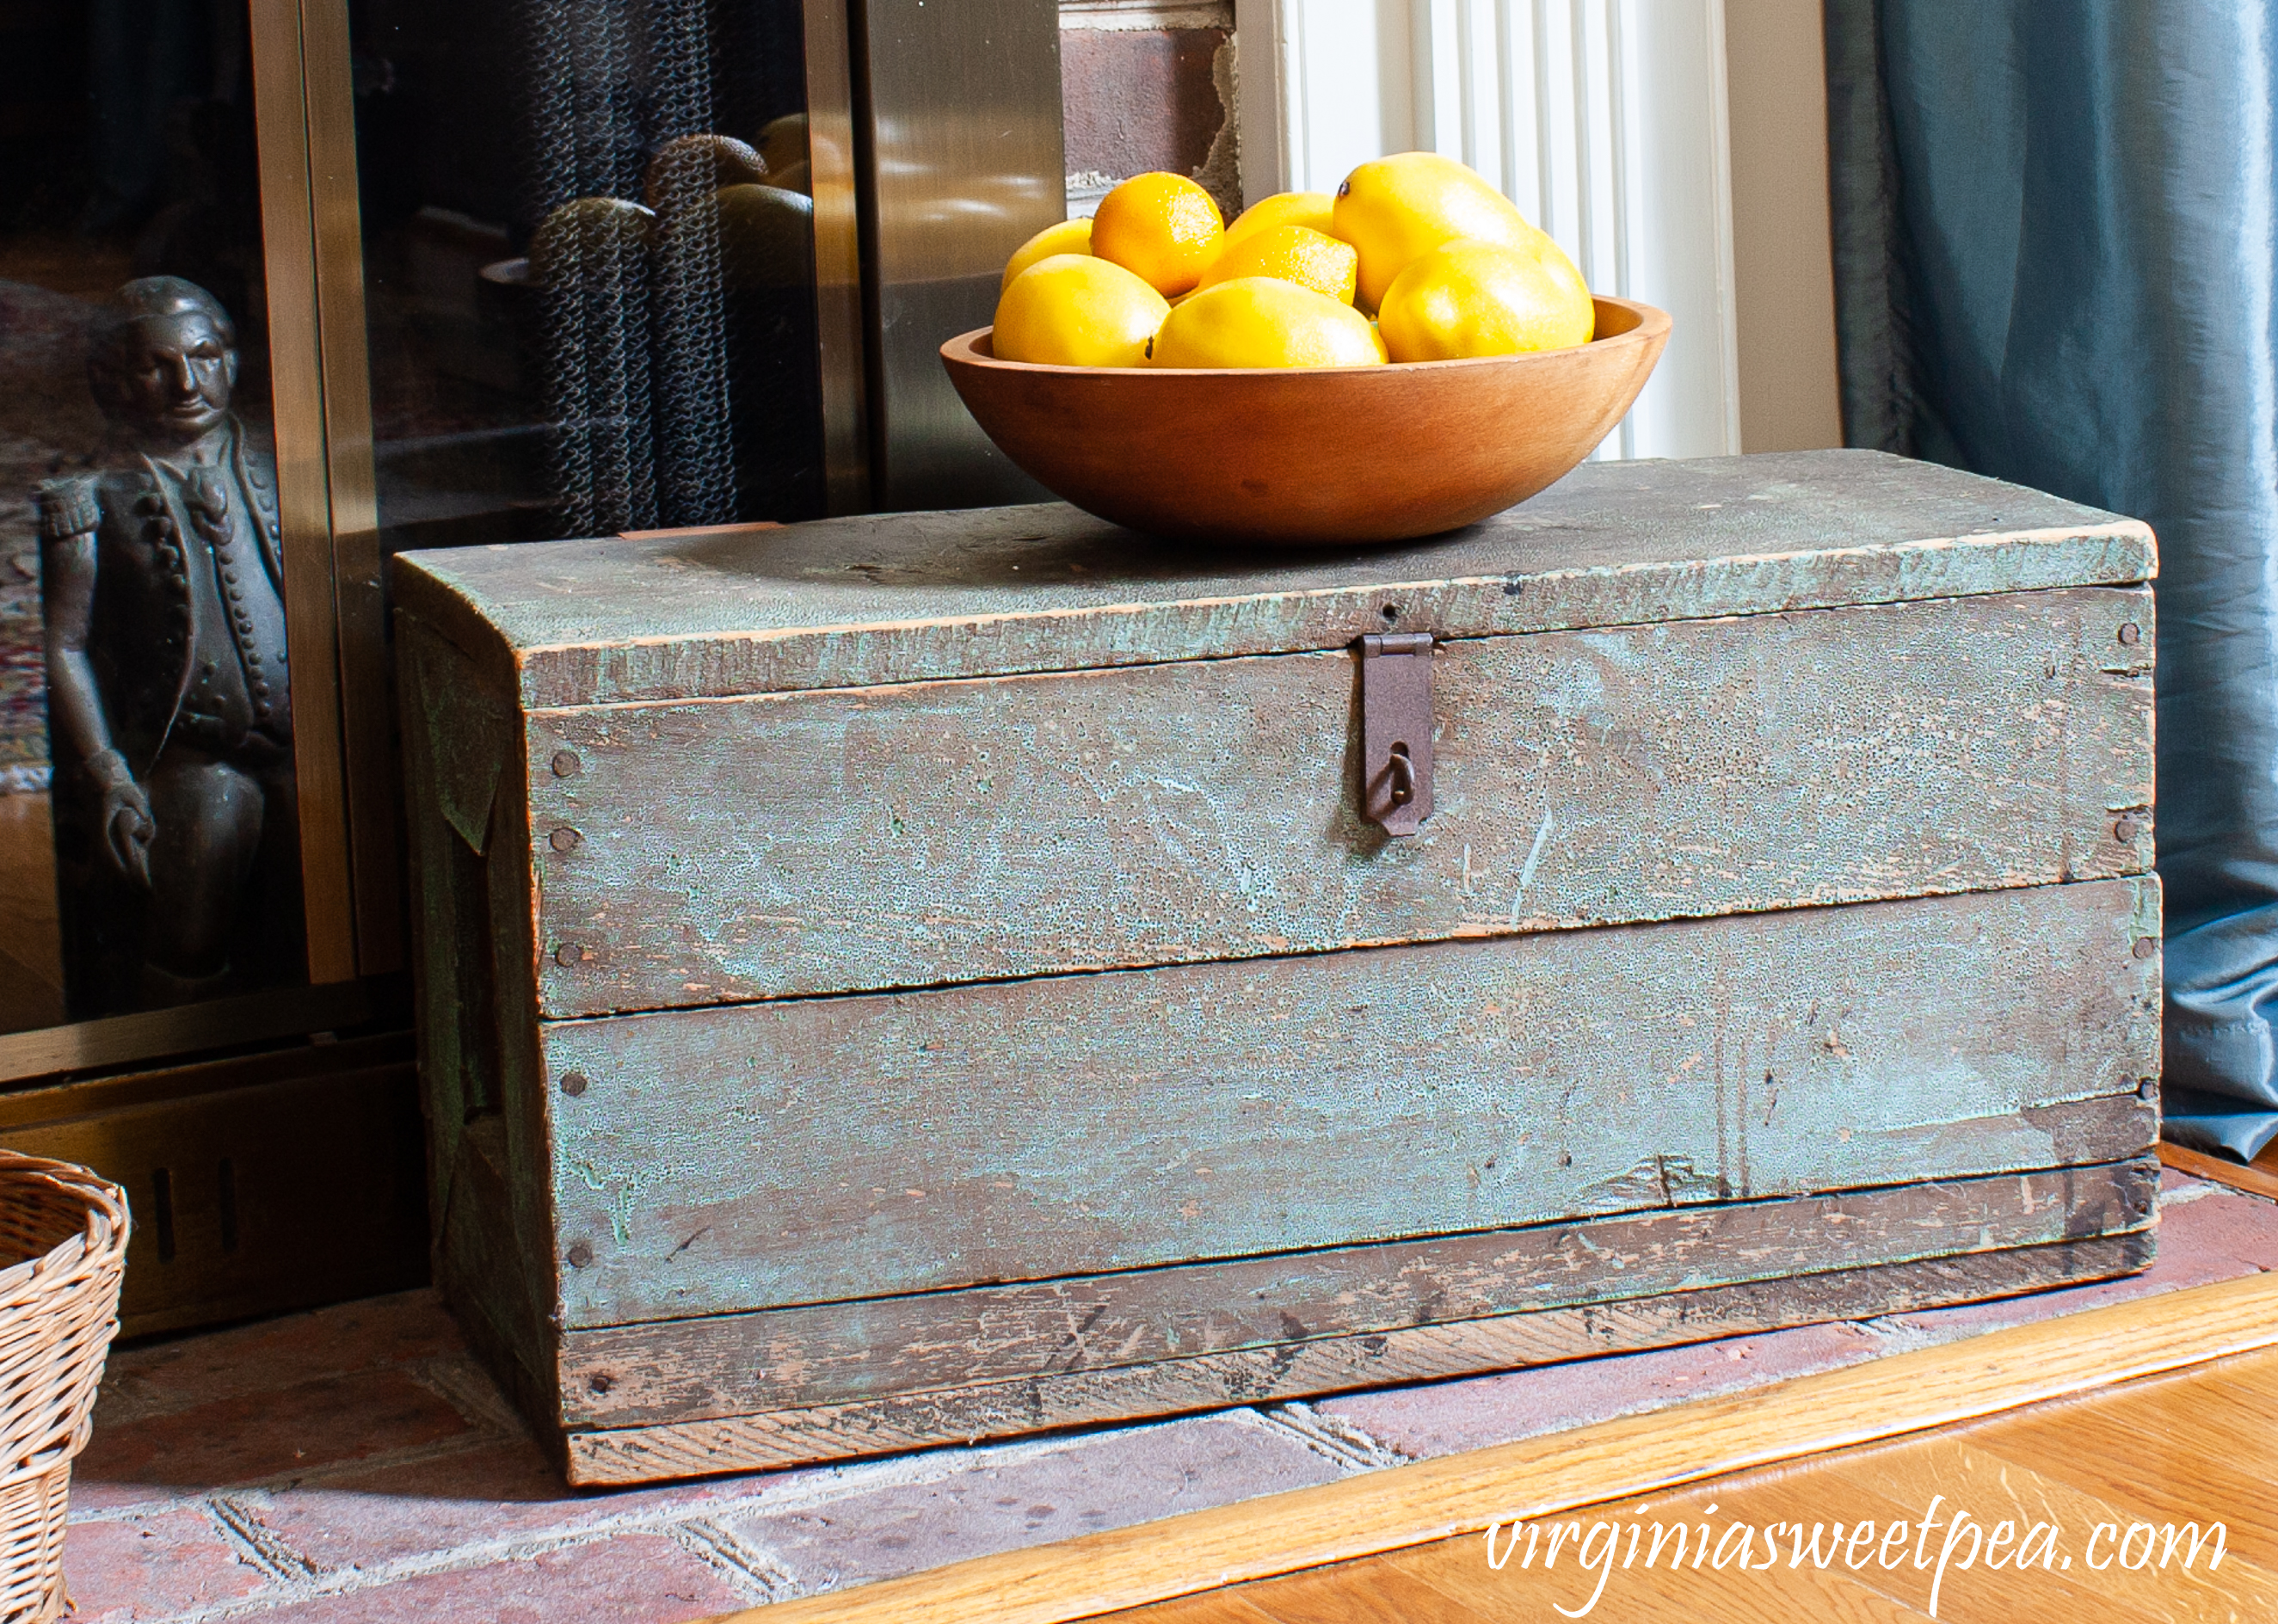 Antique tool box on a fireplace hearth with a wooden bowl filled with lemons.